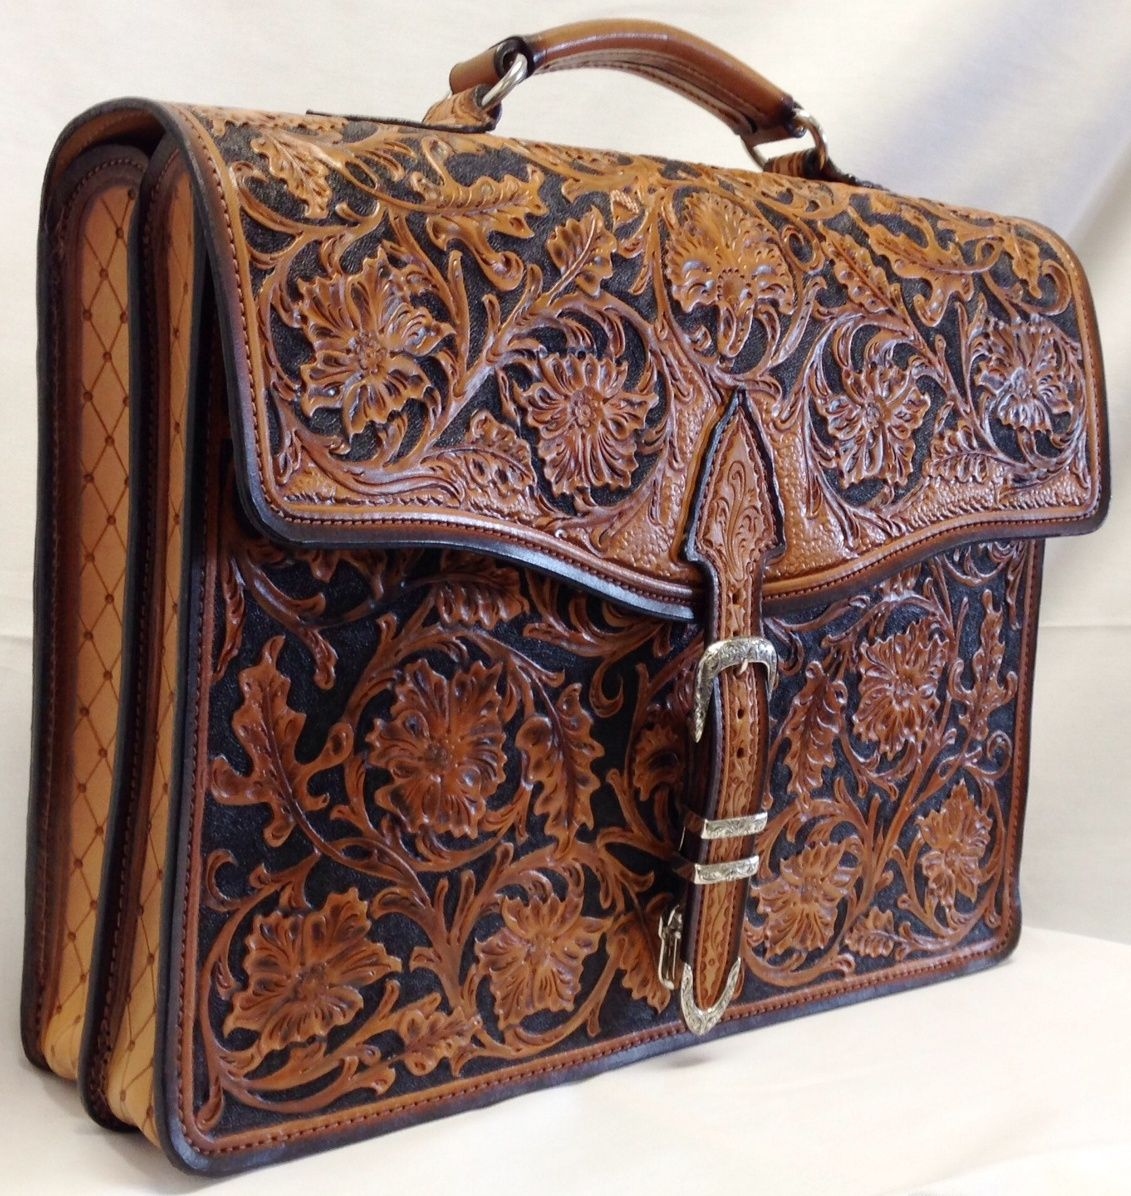 d93f3de22 The Advocate hand-tooled leather briefcase - Rewards | Menswear ...